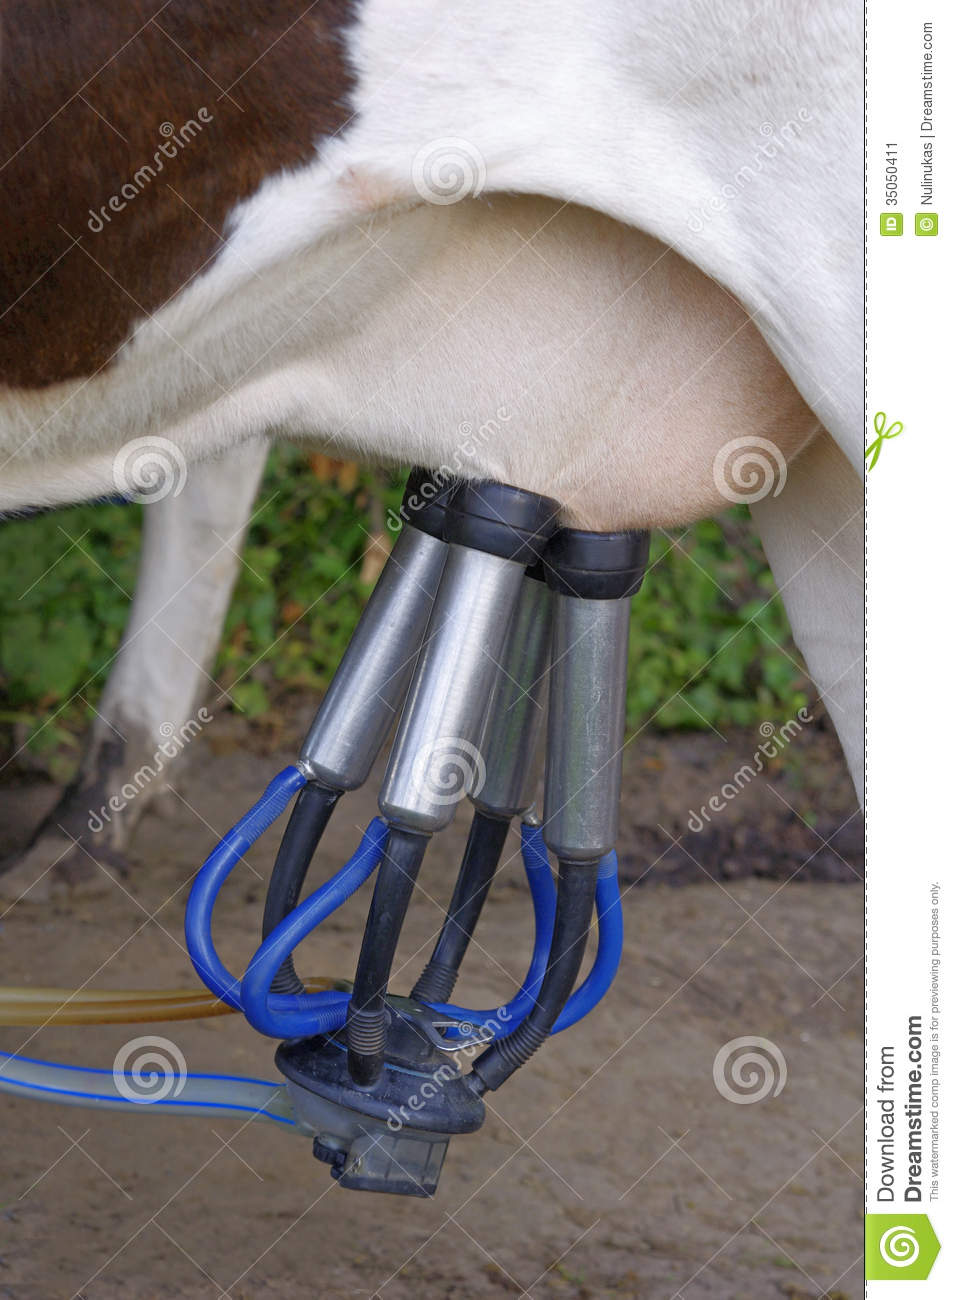 More similar stock images of ` Automatic milking machine, datail. `